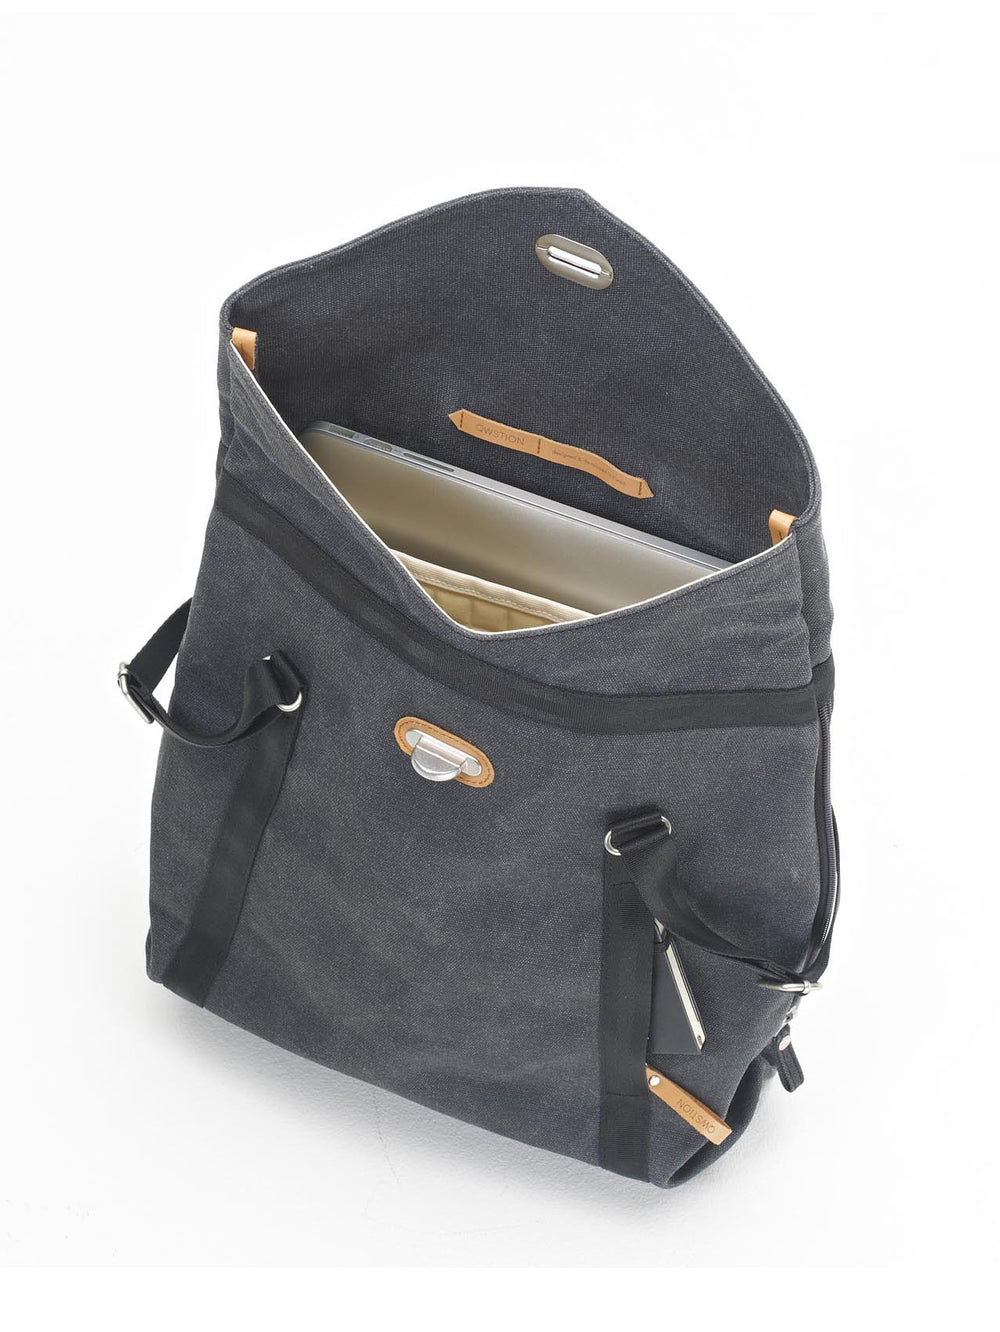 "A 15"" laptop fits into the internal sleeve of Qwstion Tote bag/backpack"